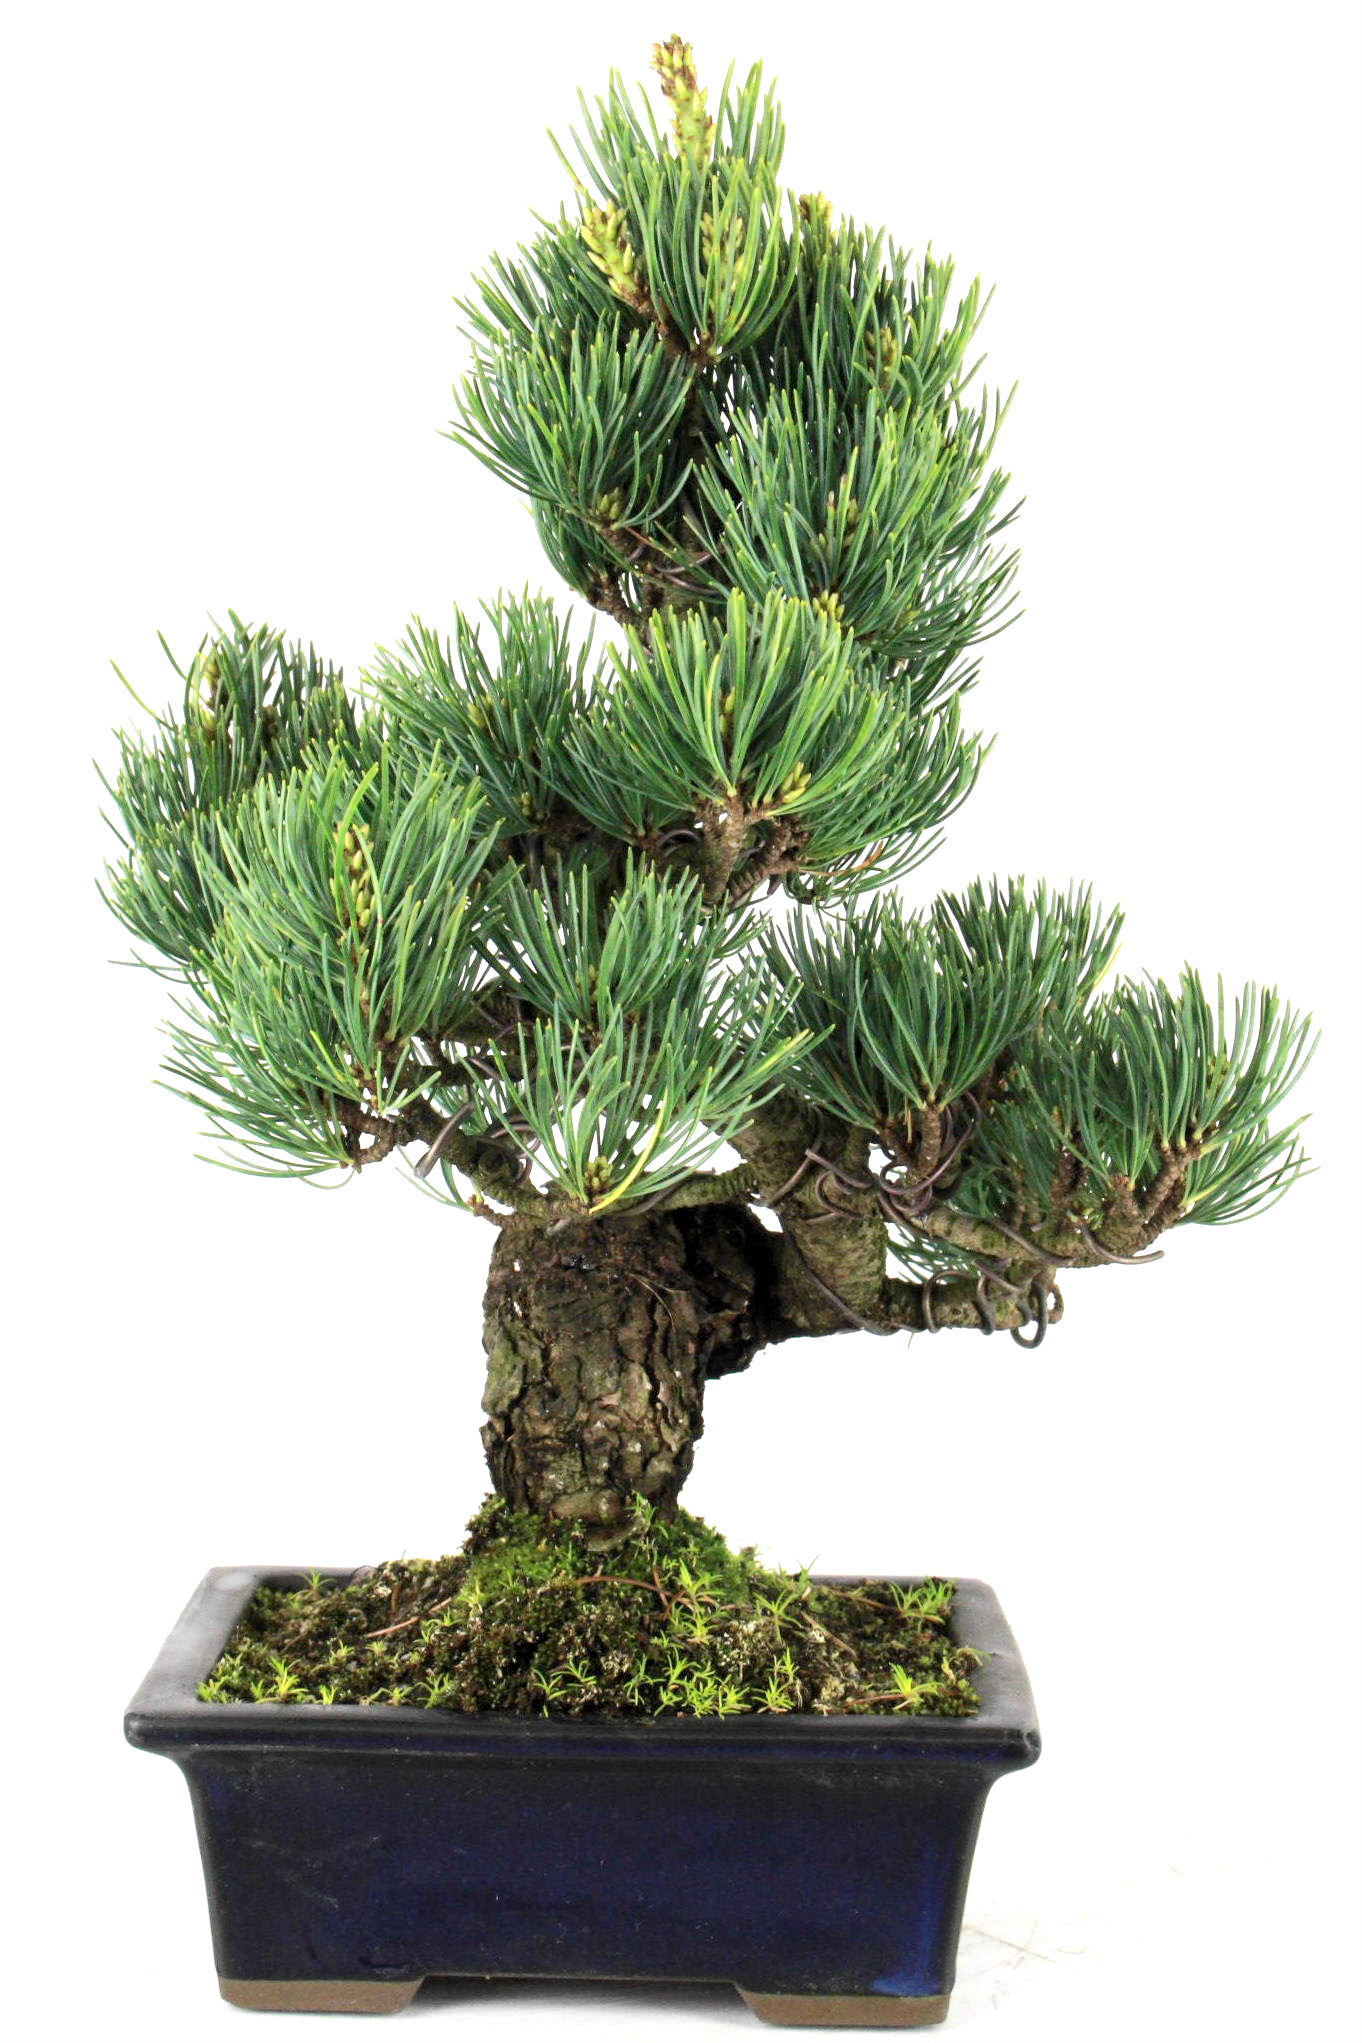 Bonsai m dchenkiefer aus japan 32 cm 10 jahre b1613 ebay for Bonsai onlineshop